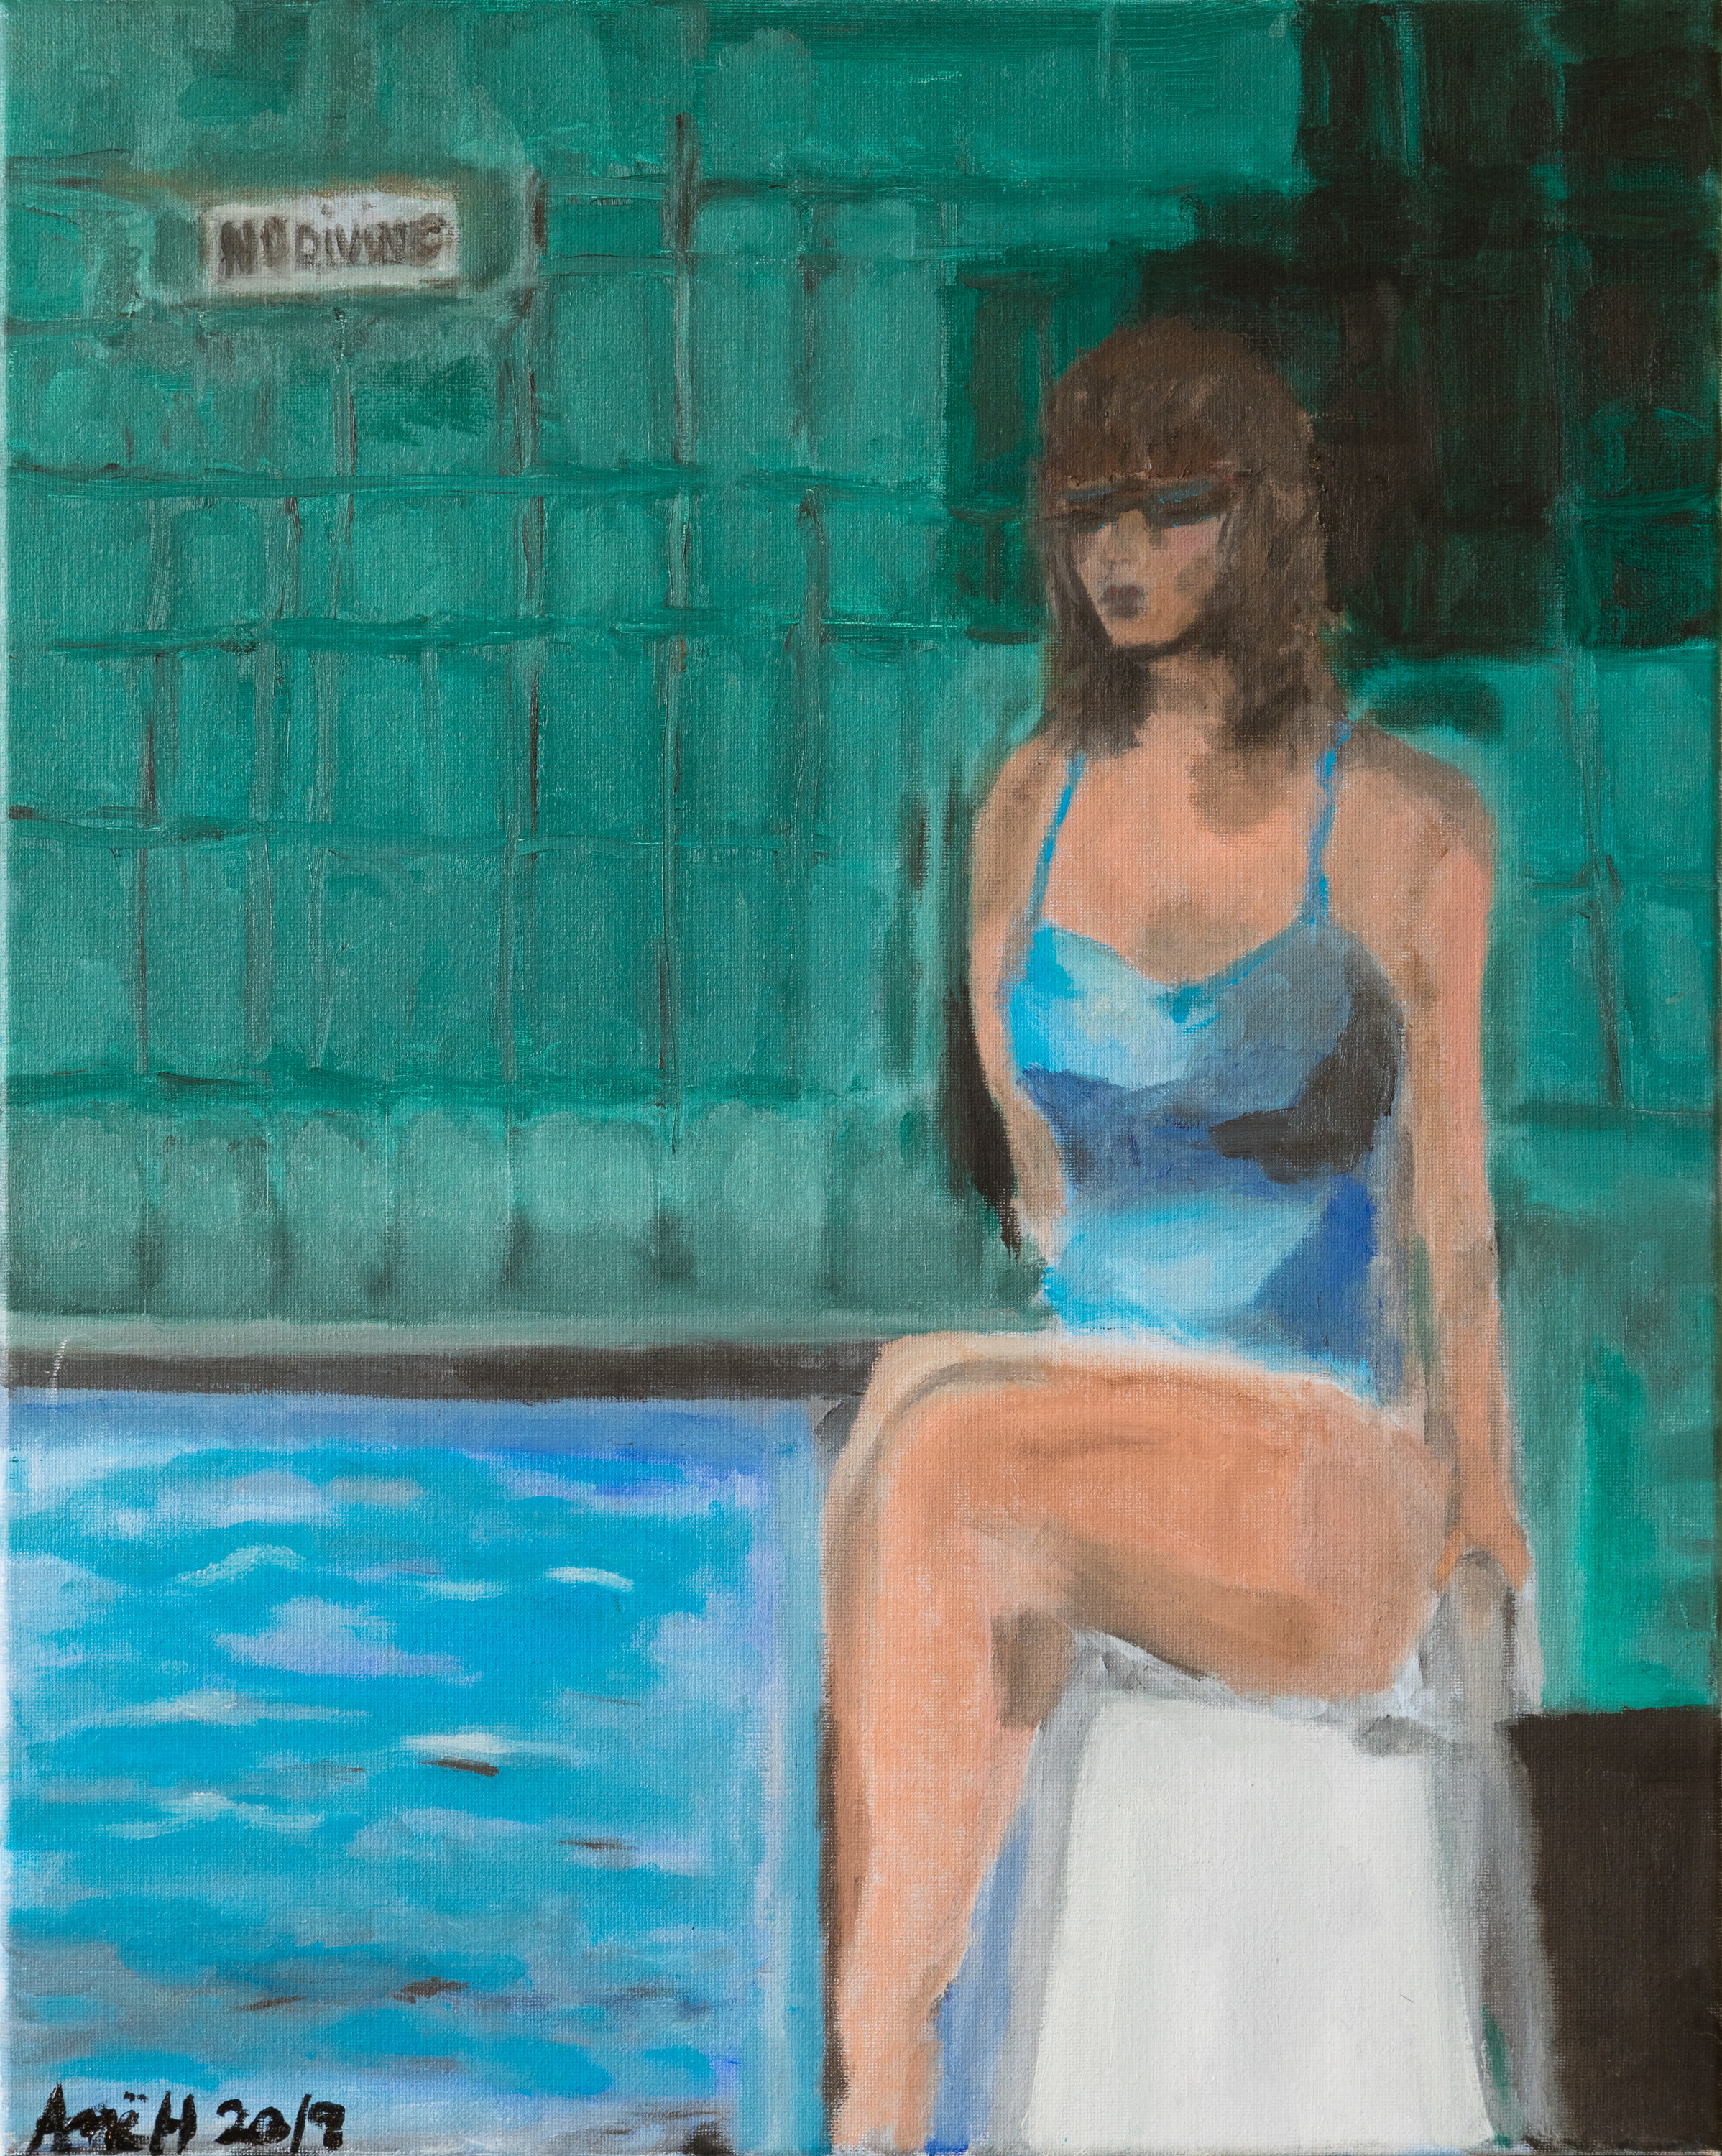 No diving   ane howard paintings 06 swdbjc